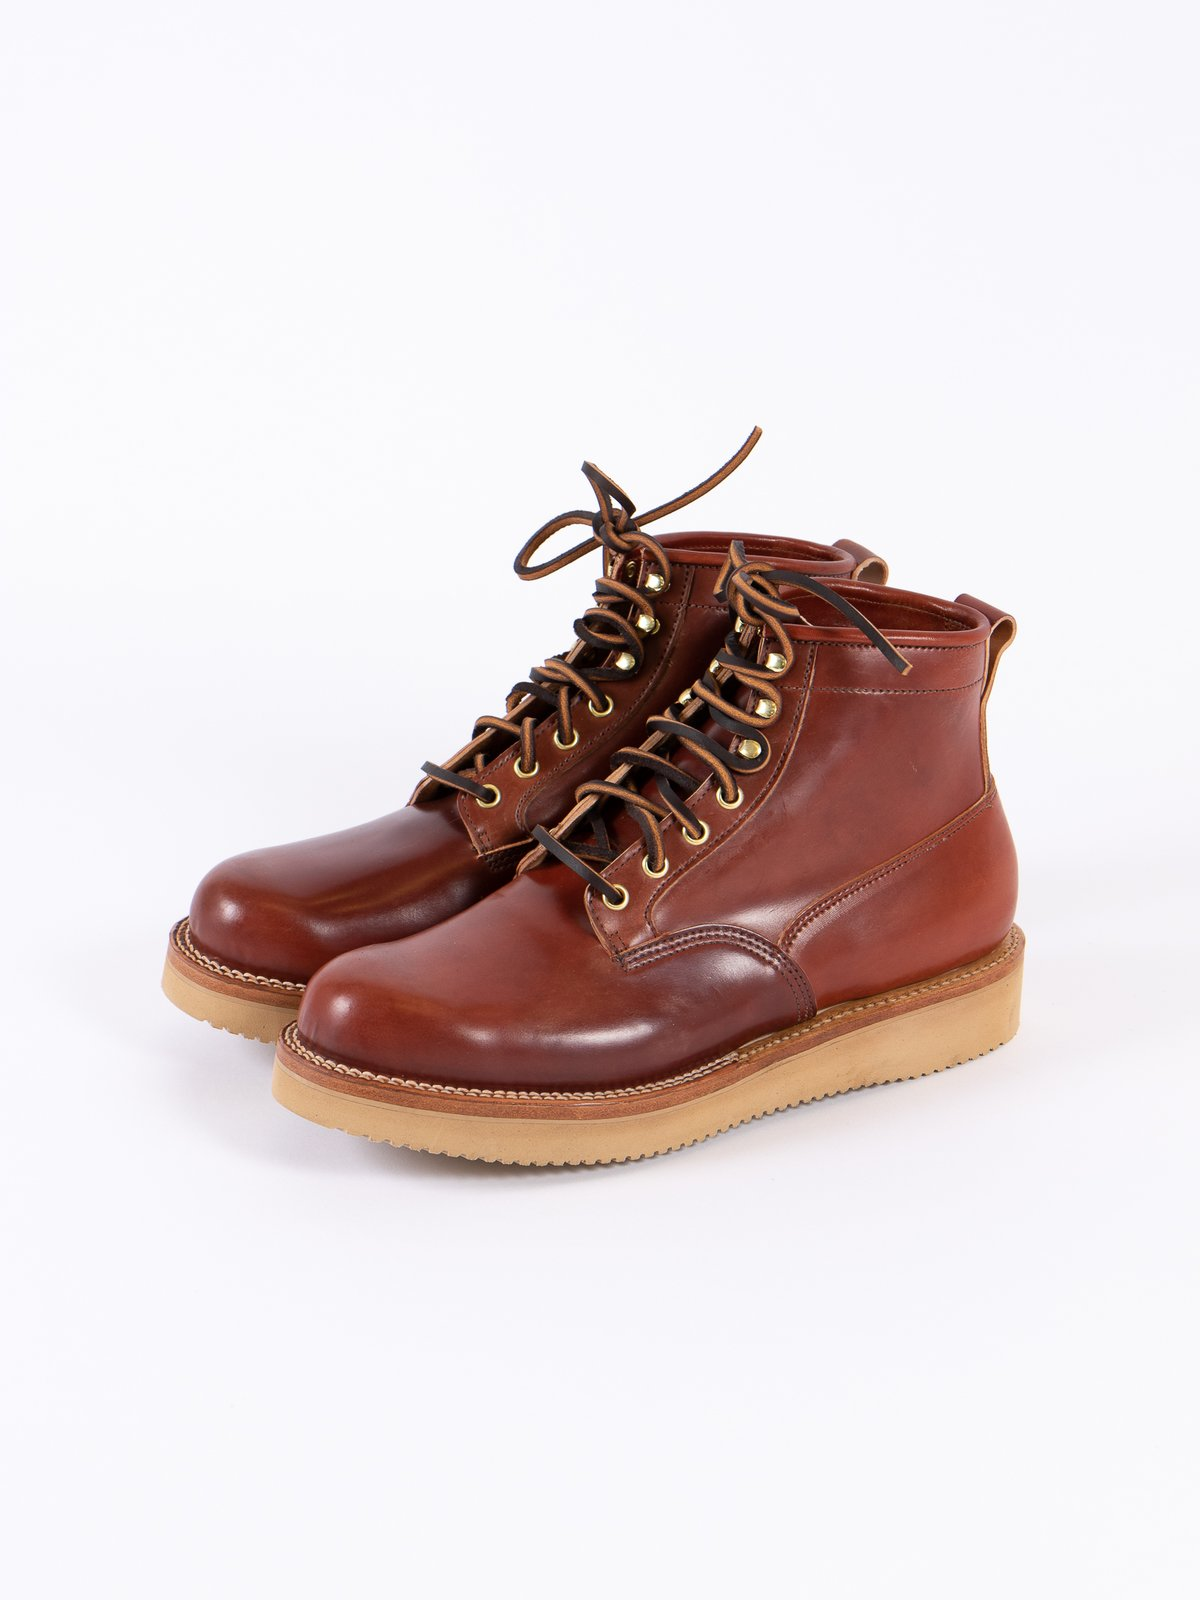 Garnet Shell Cordovan Scout Boot - Image 2